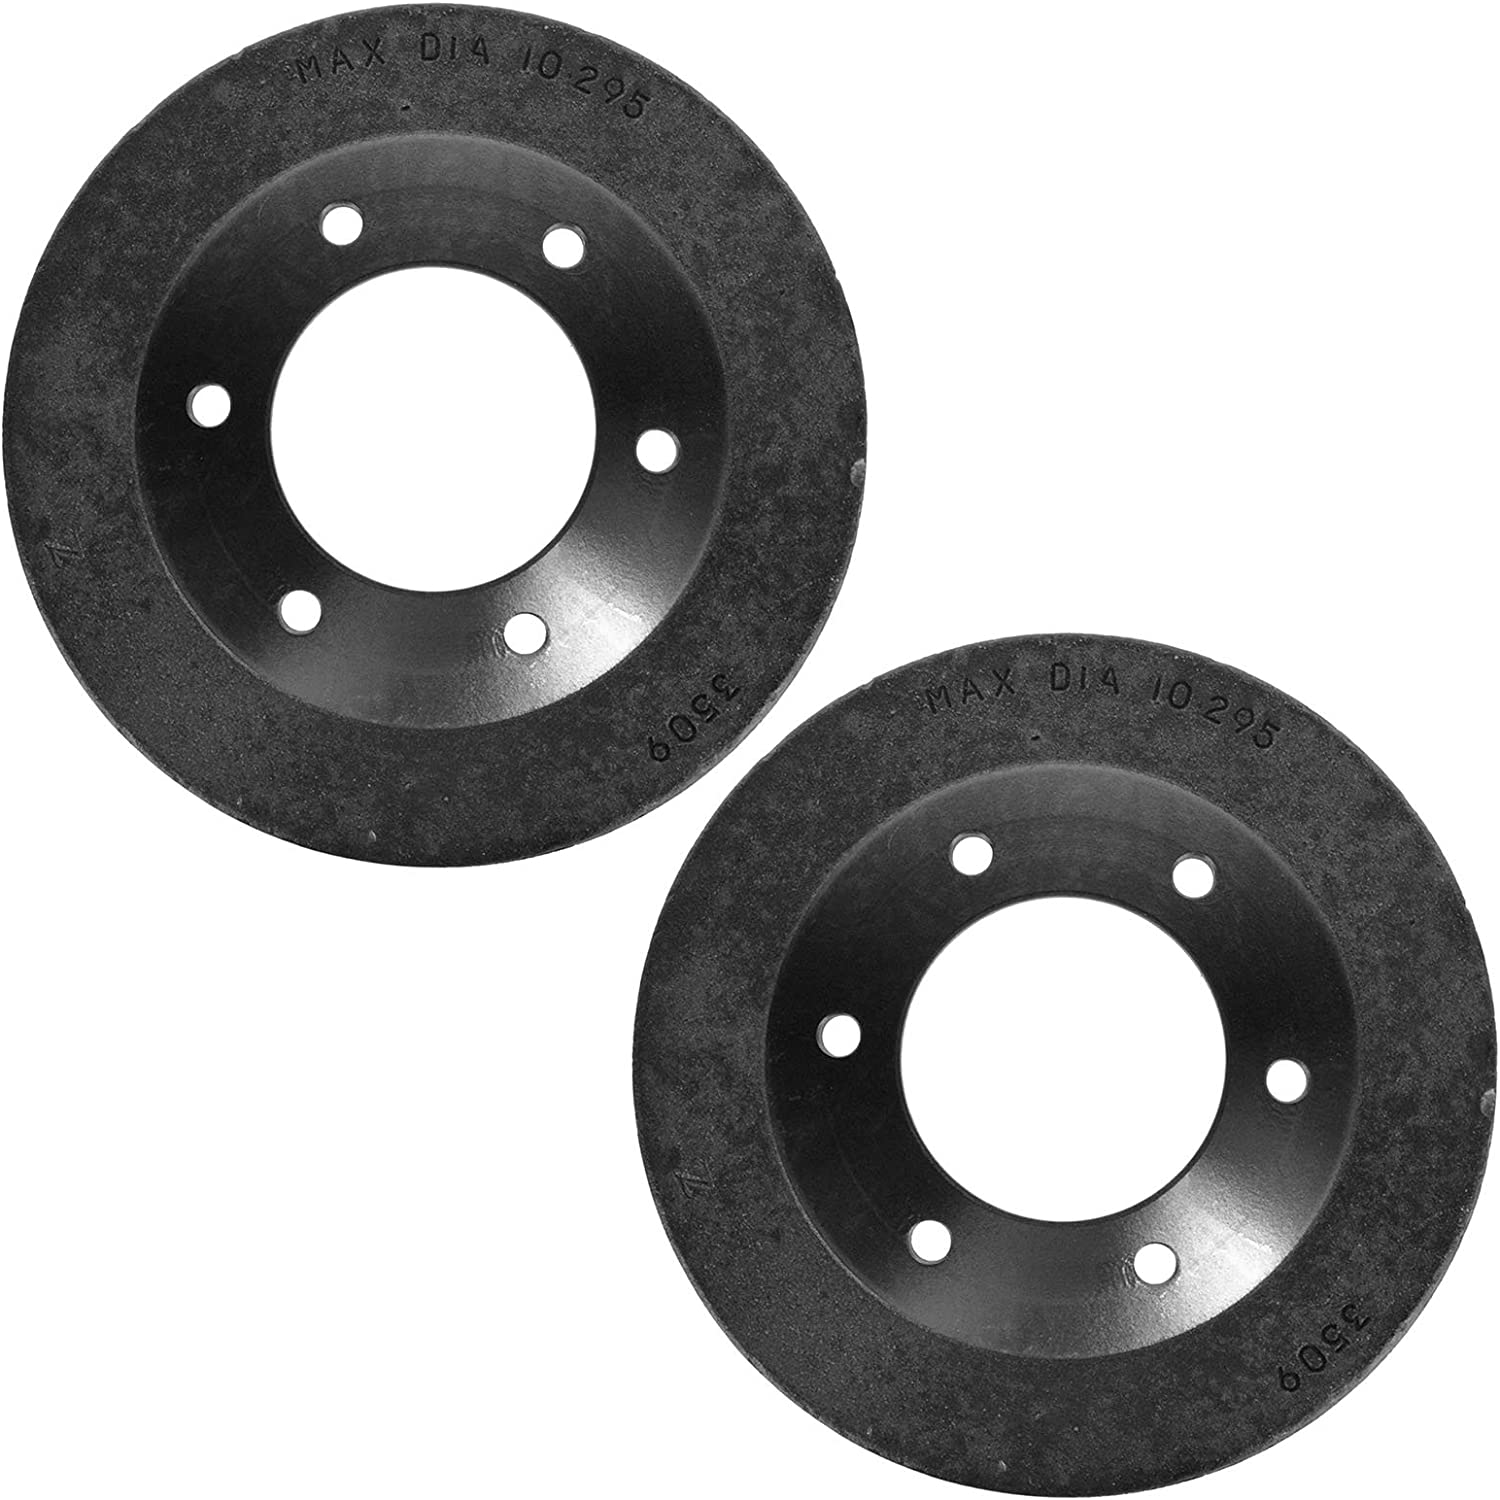 Bendix Premium Drum and Rotor PDR0526 Rear Brake Drum For Nissan Frontier Models